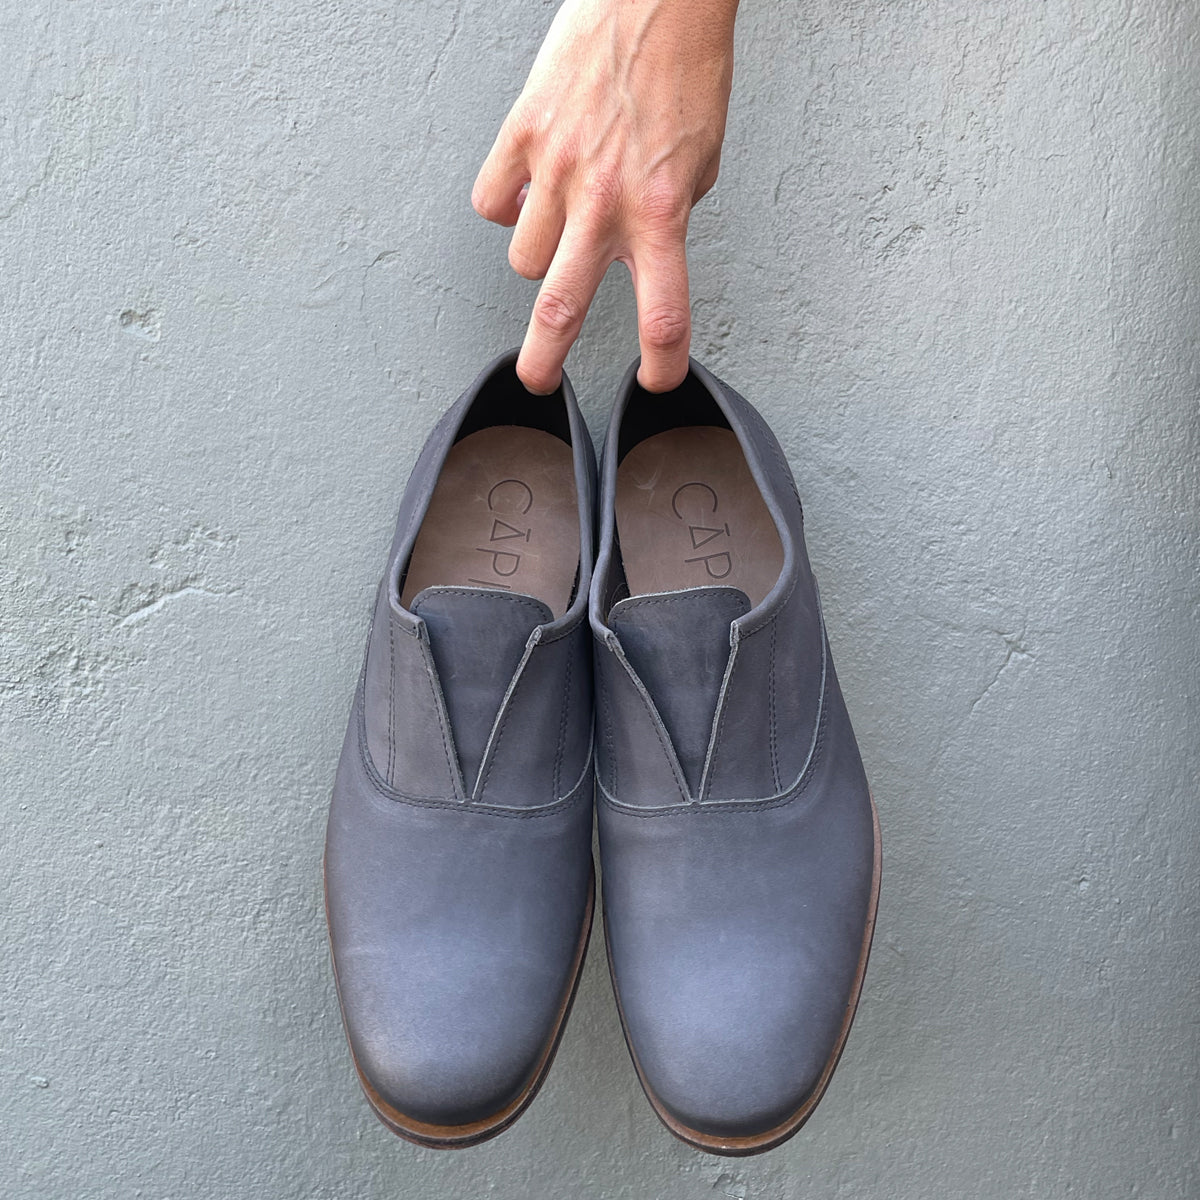 Chelo Slug - leather shoes